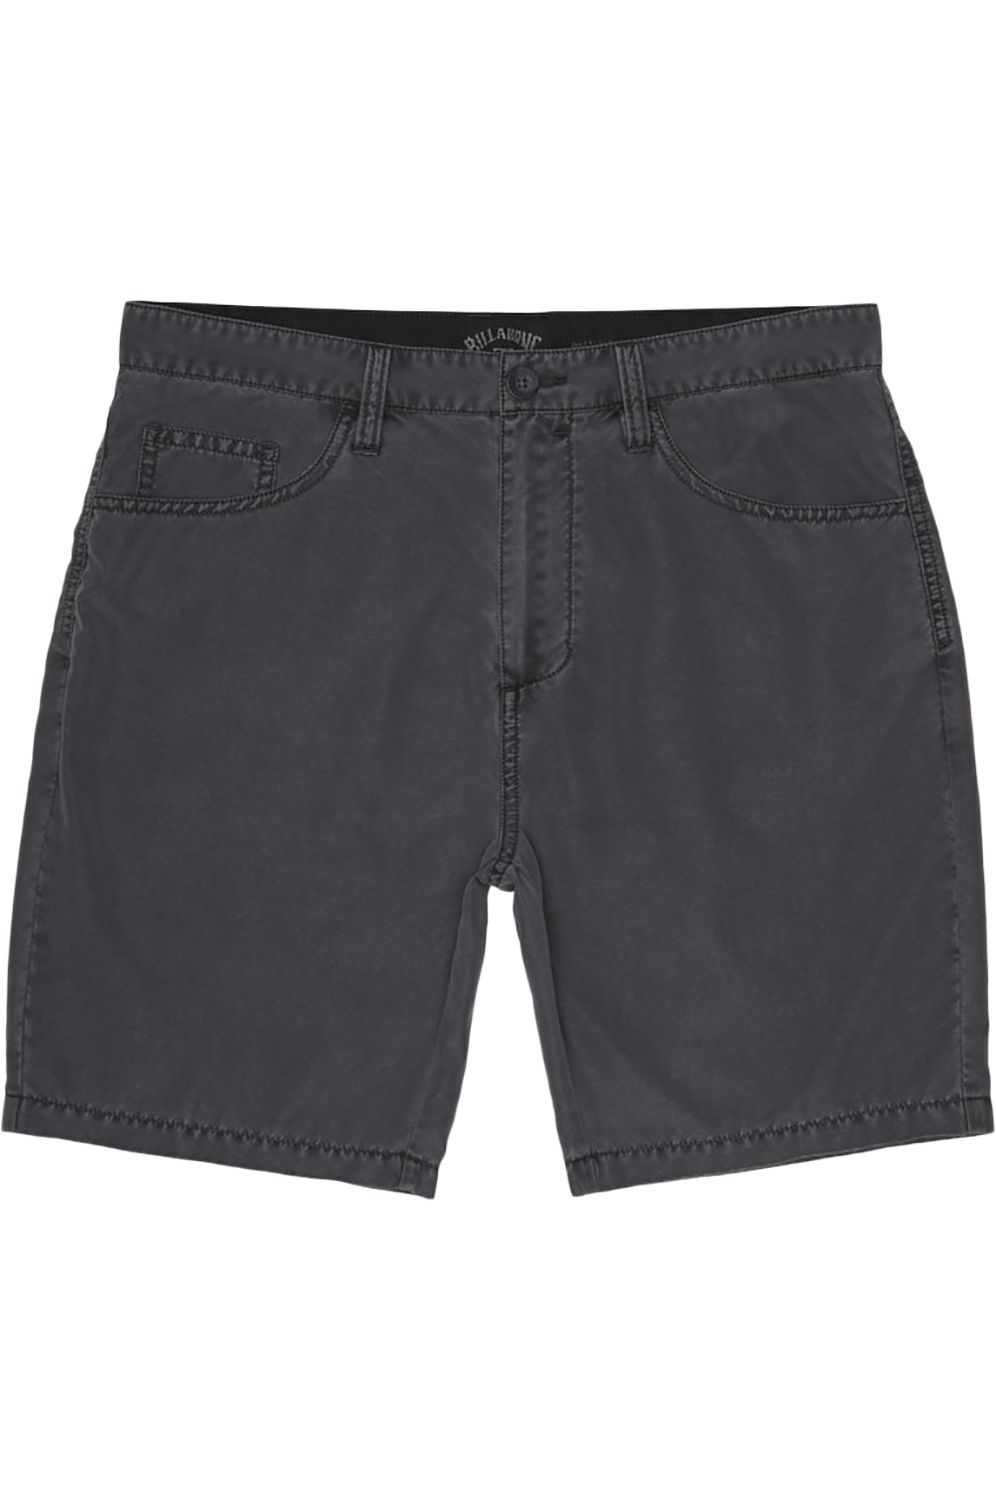 Billabong HydroWalkShorts OUTSIDER SUBMERSIBLE Char